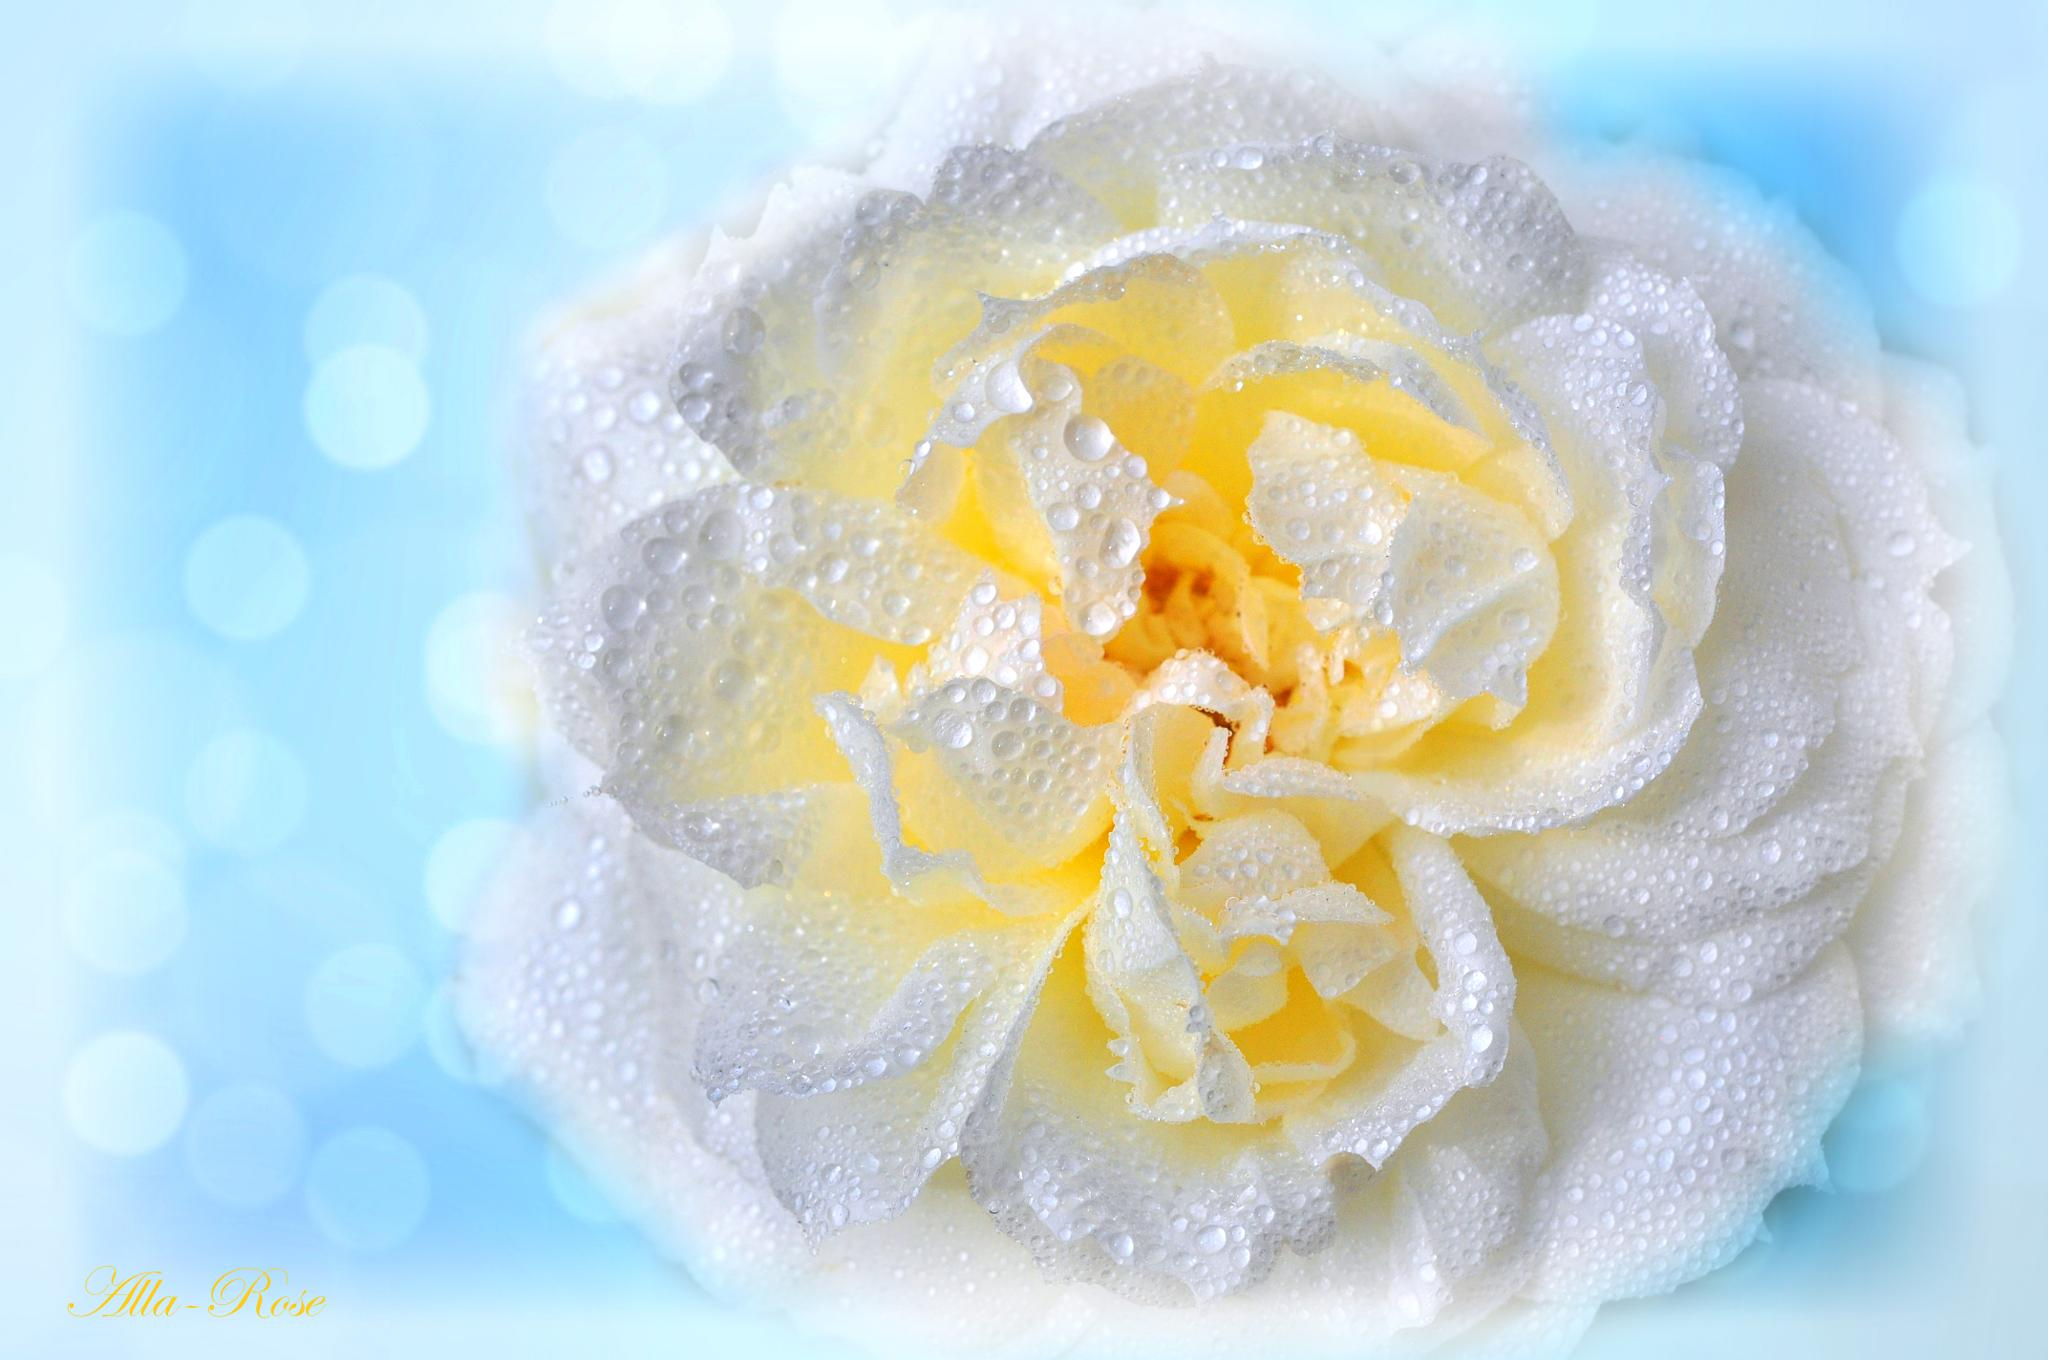 The fragrance of the white rose by Alla-Rose